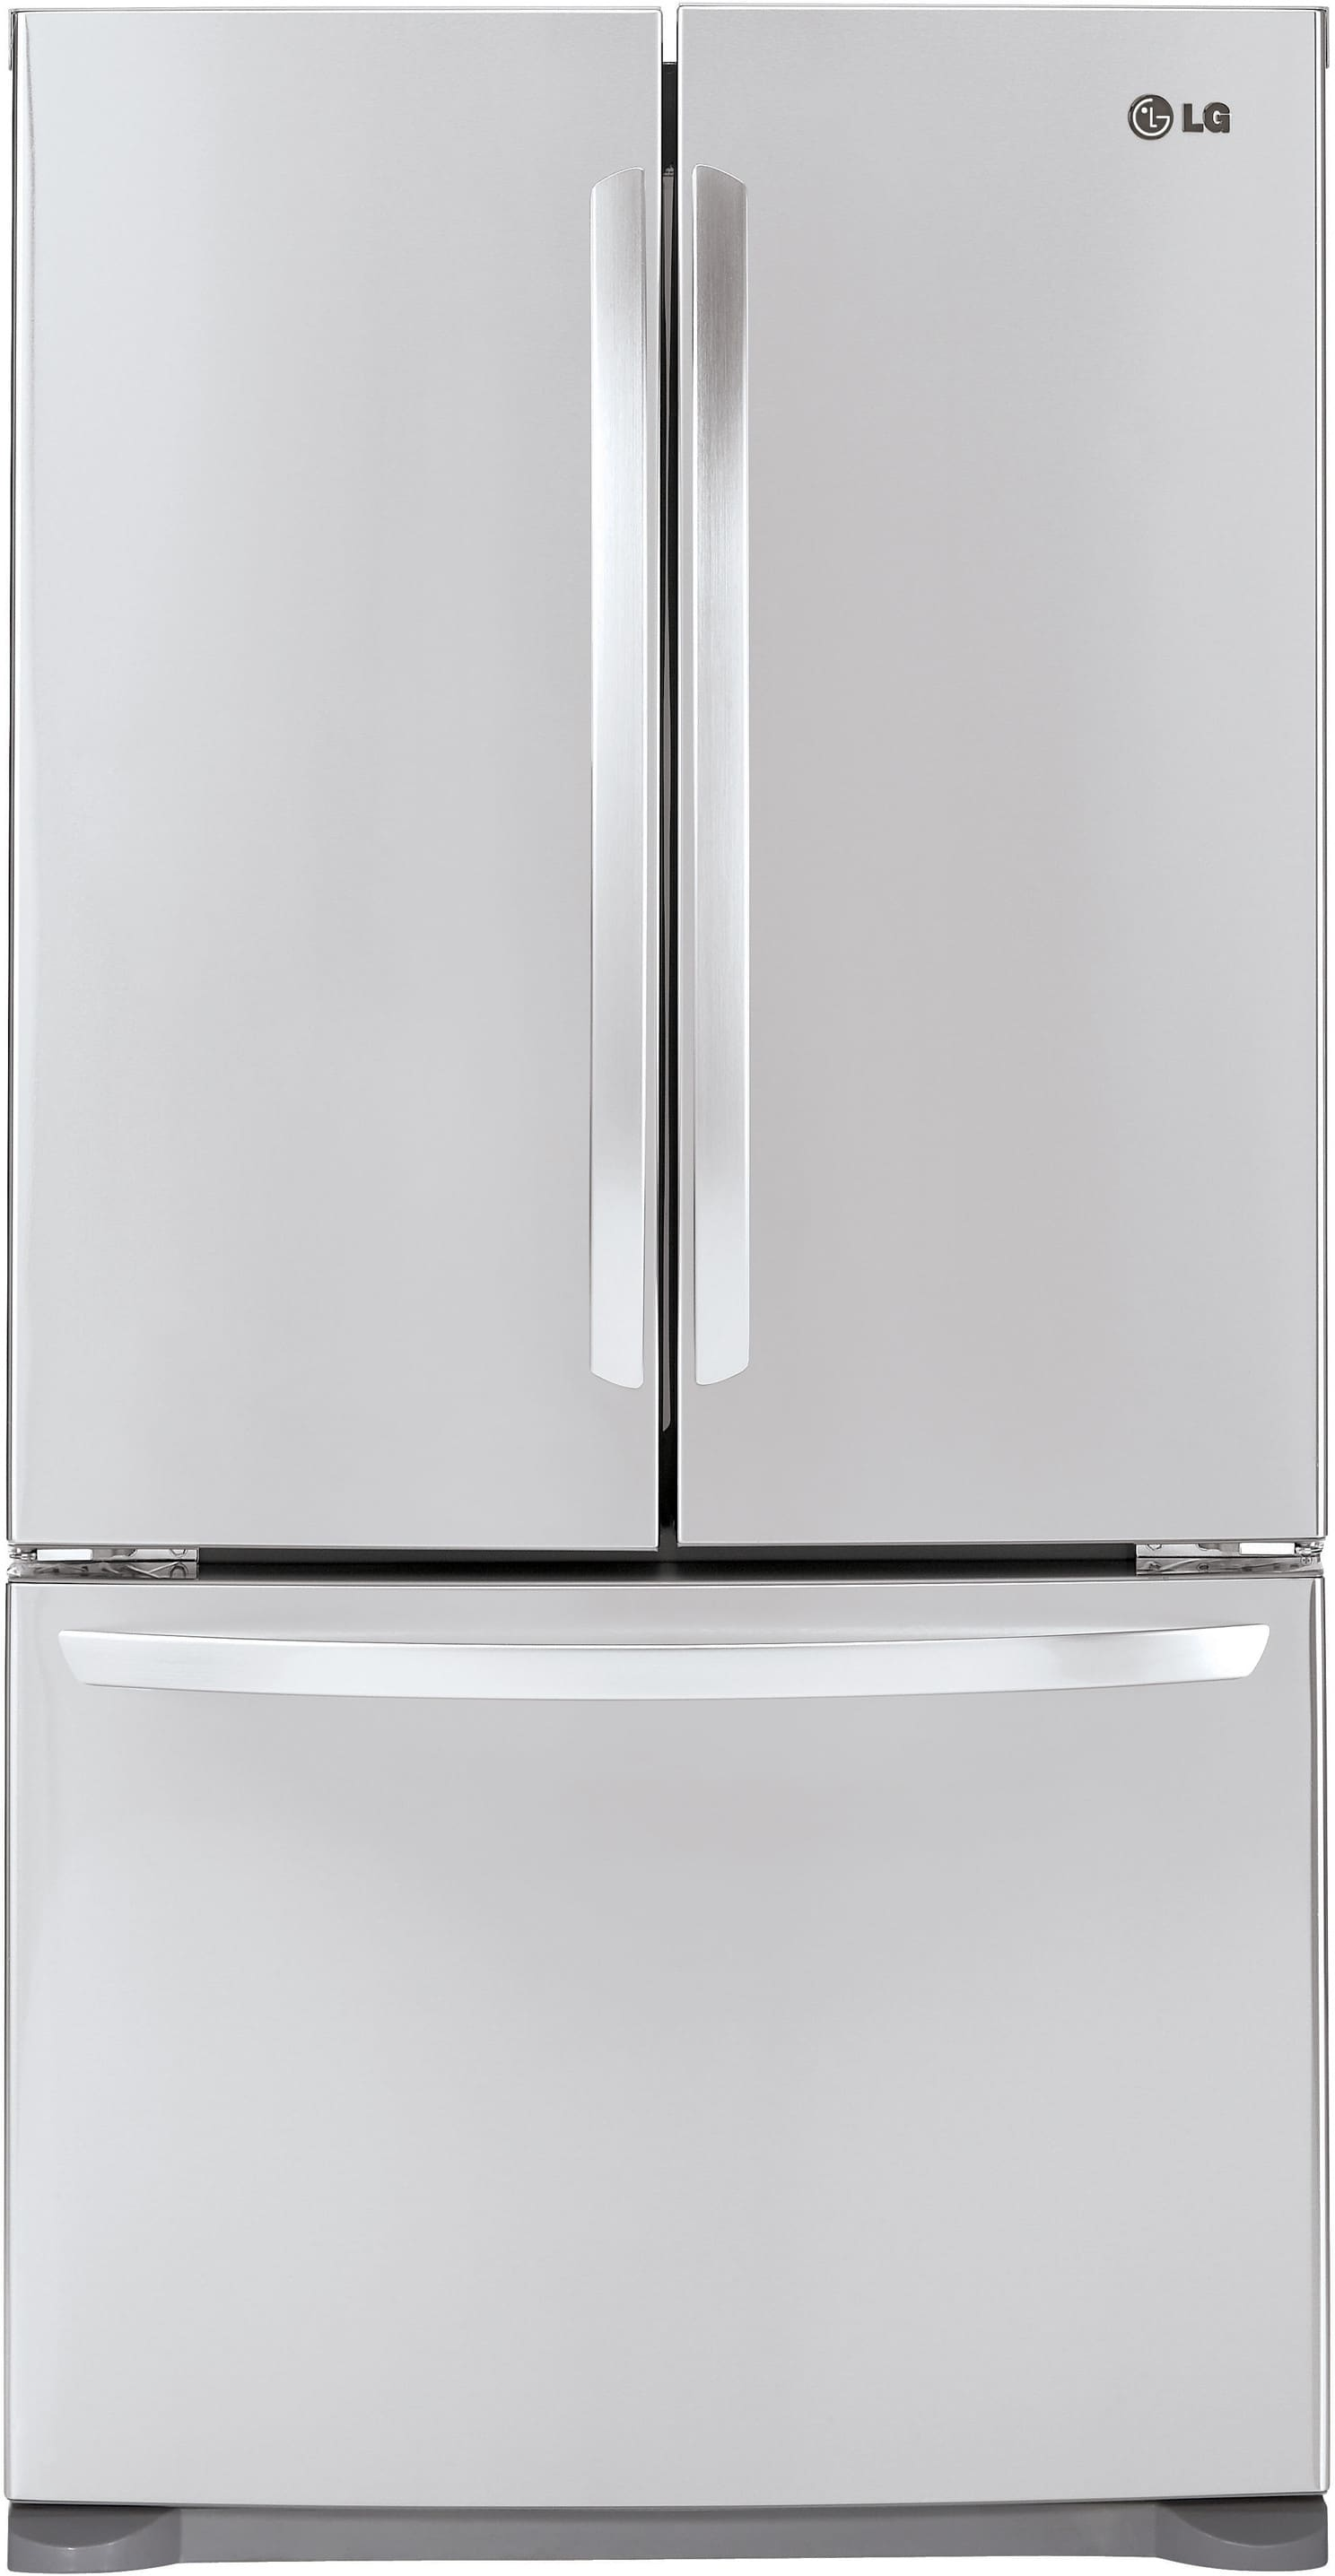 Lg Lfc21776st 36 Inch Counter Depth French Door Refrigerator With